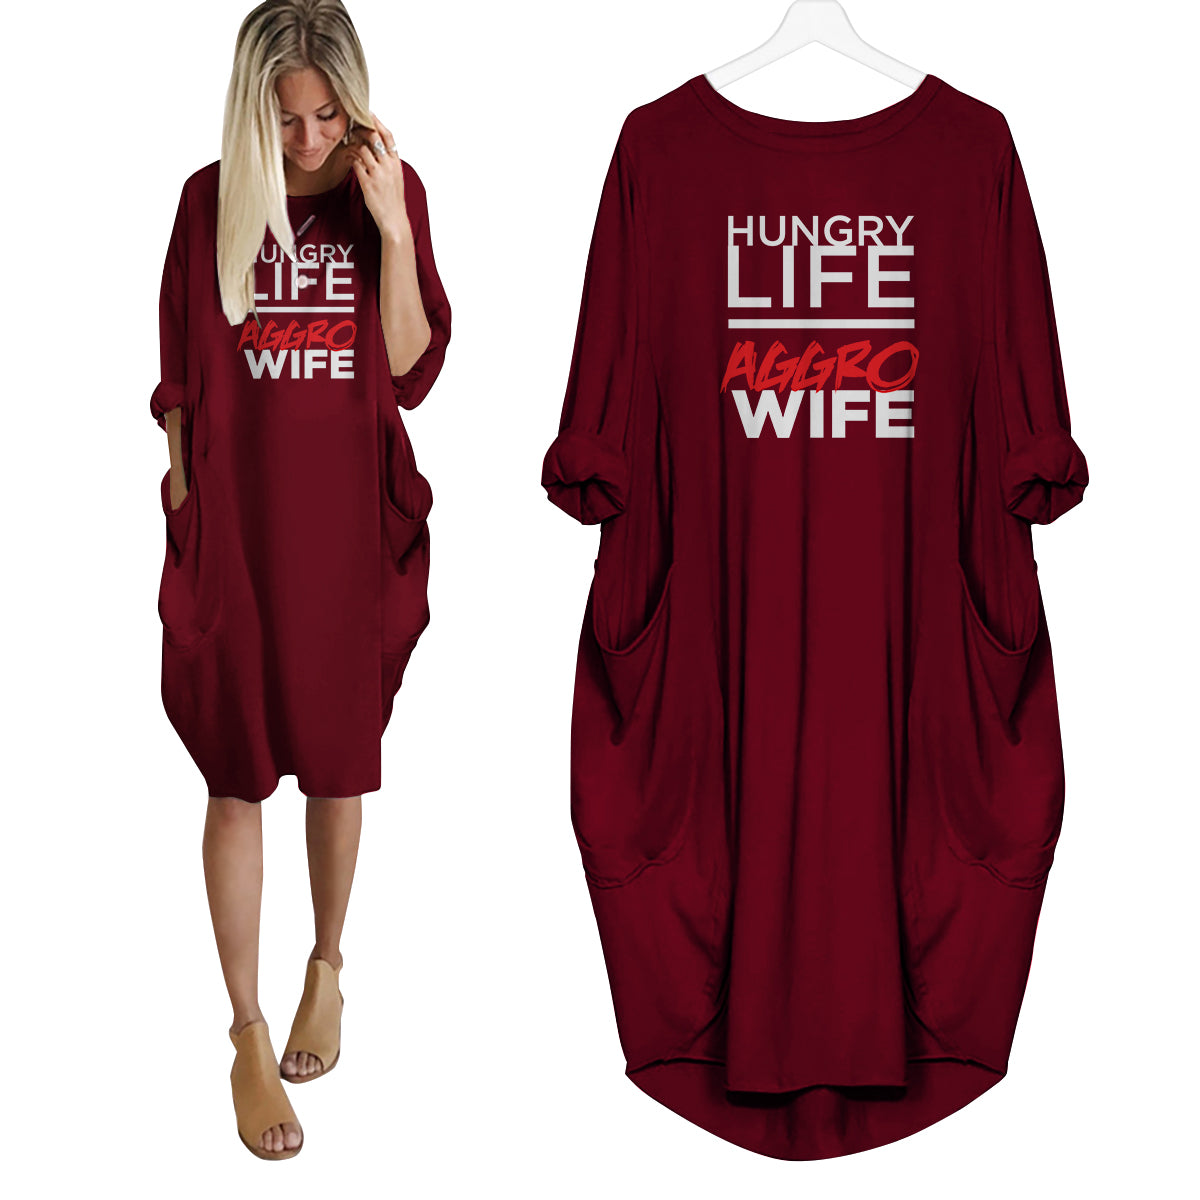 Hungry Wife Aggro Life Dress